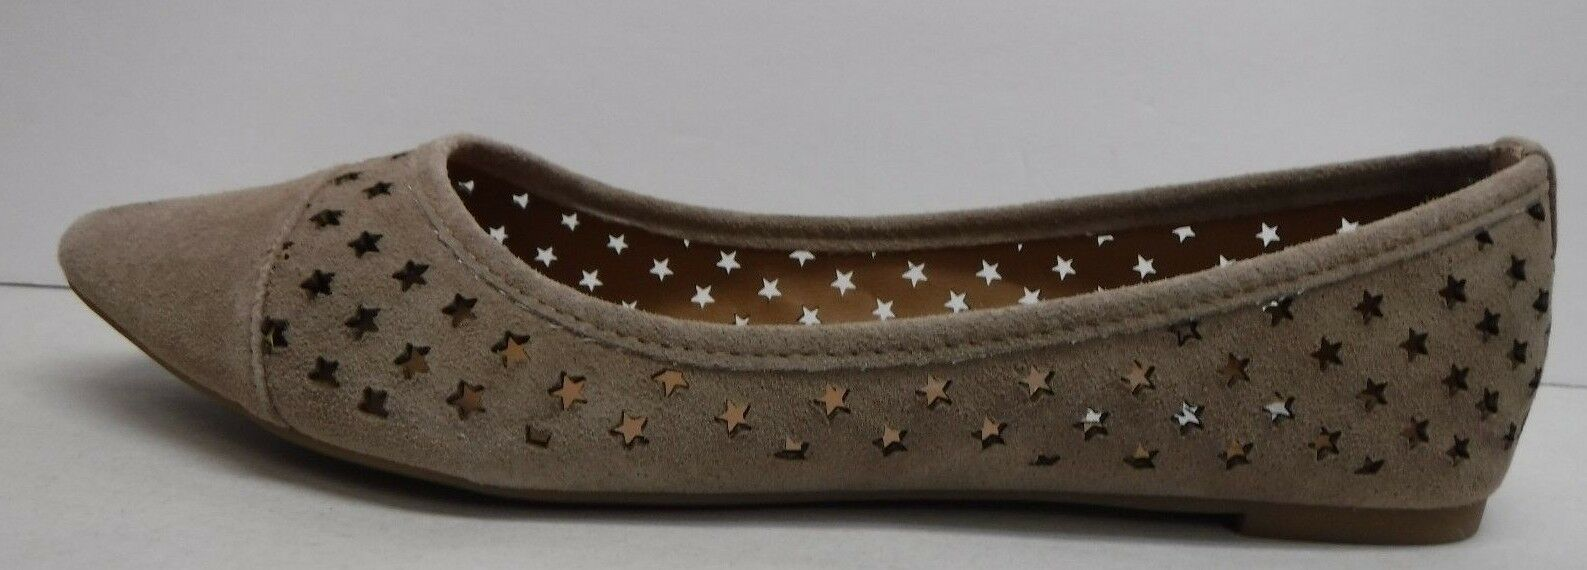 Steve Madden Taille 8 Taupe Suede Loafer Flats New femmes chaussures